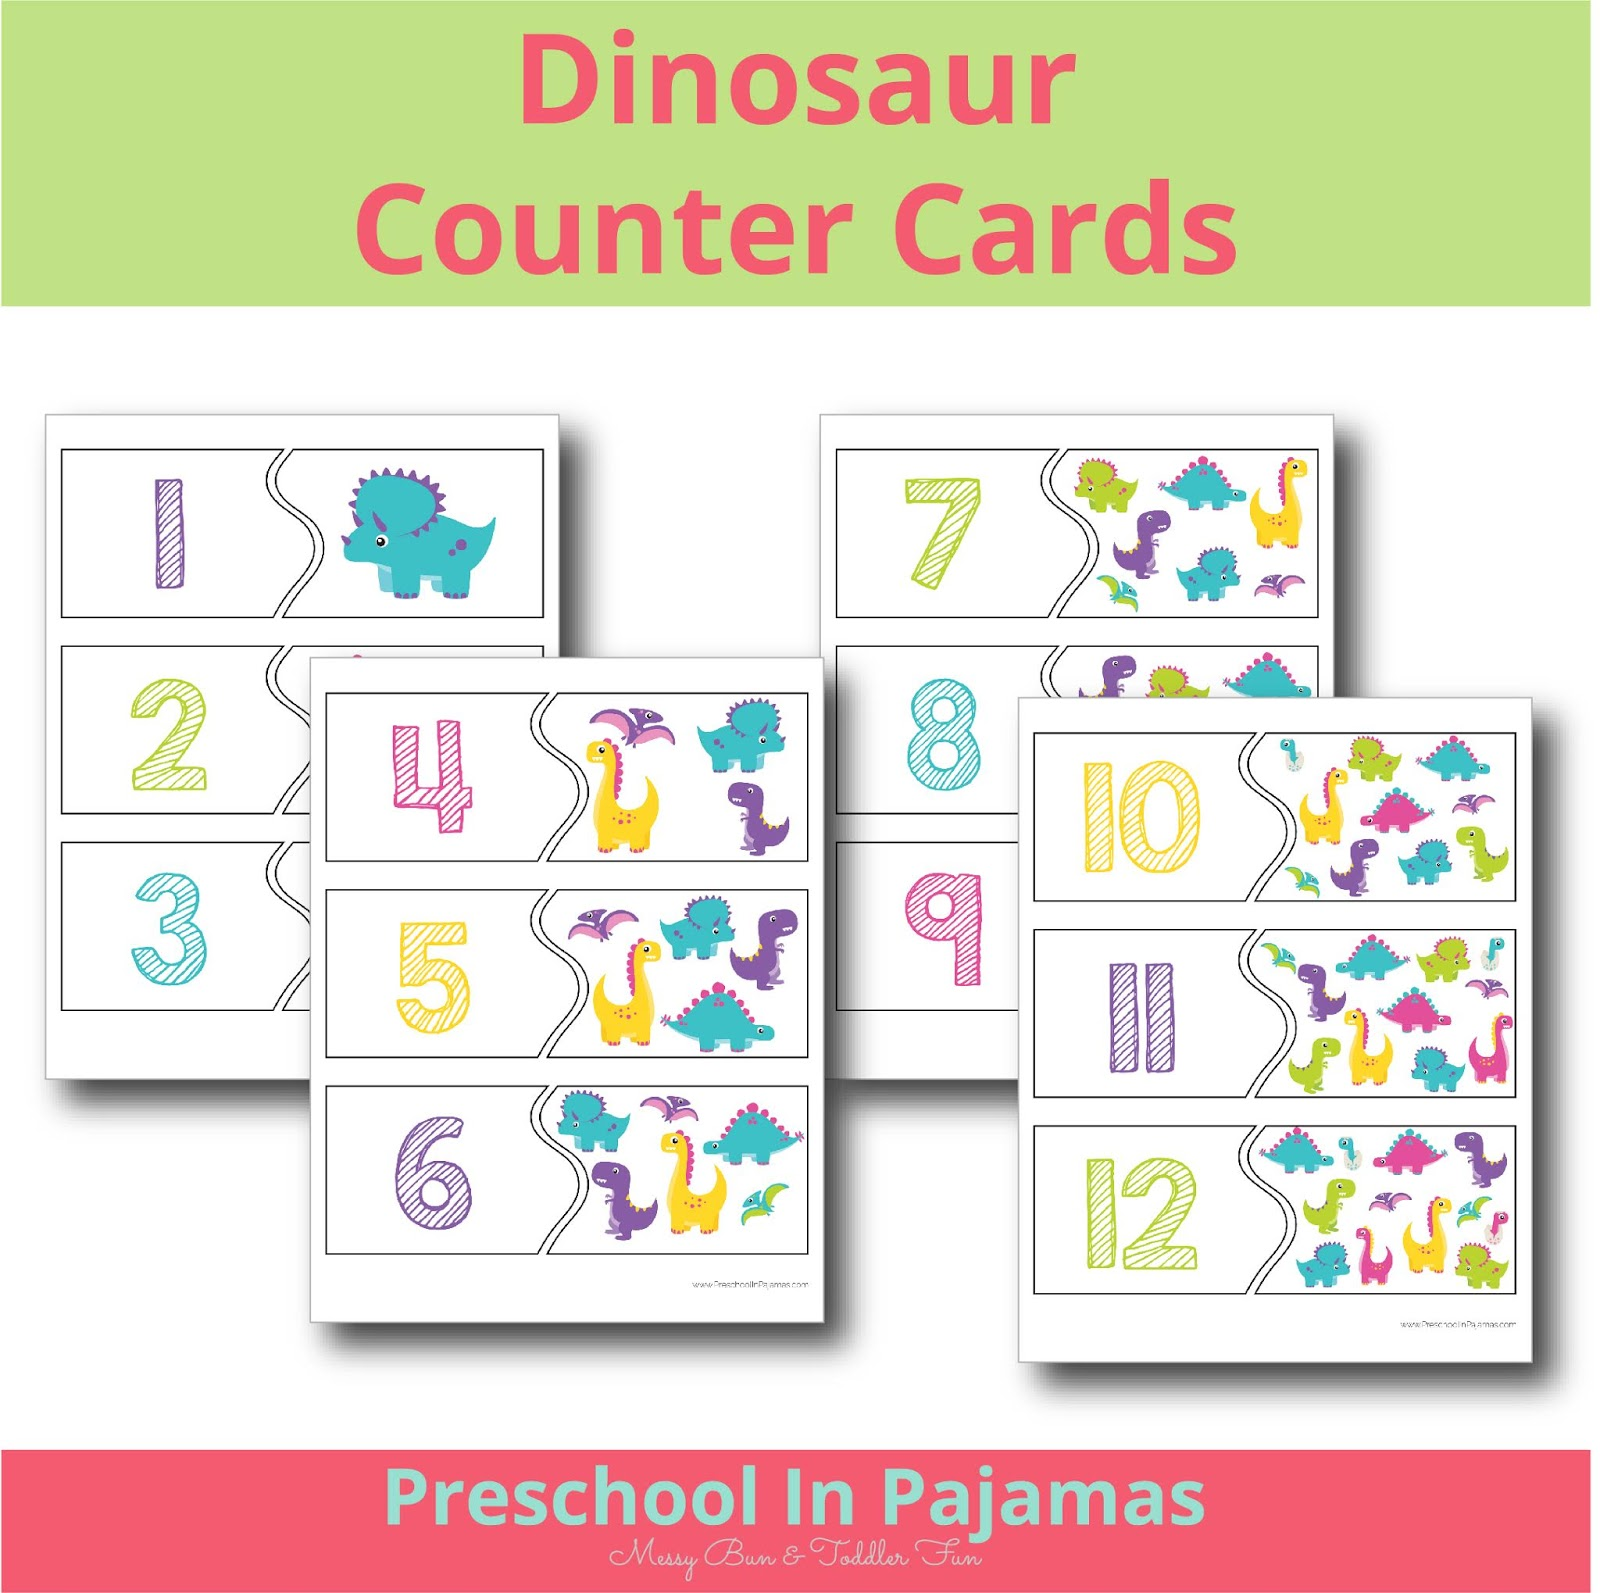 Free Dinosaur Counter Cards Printable